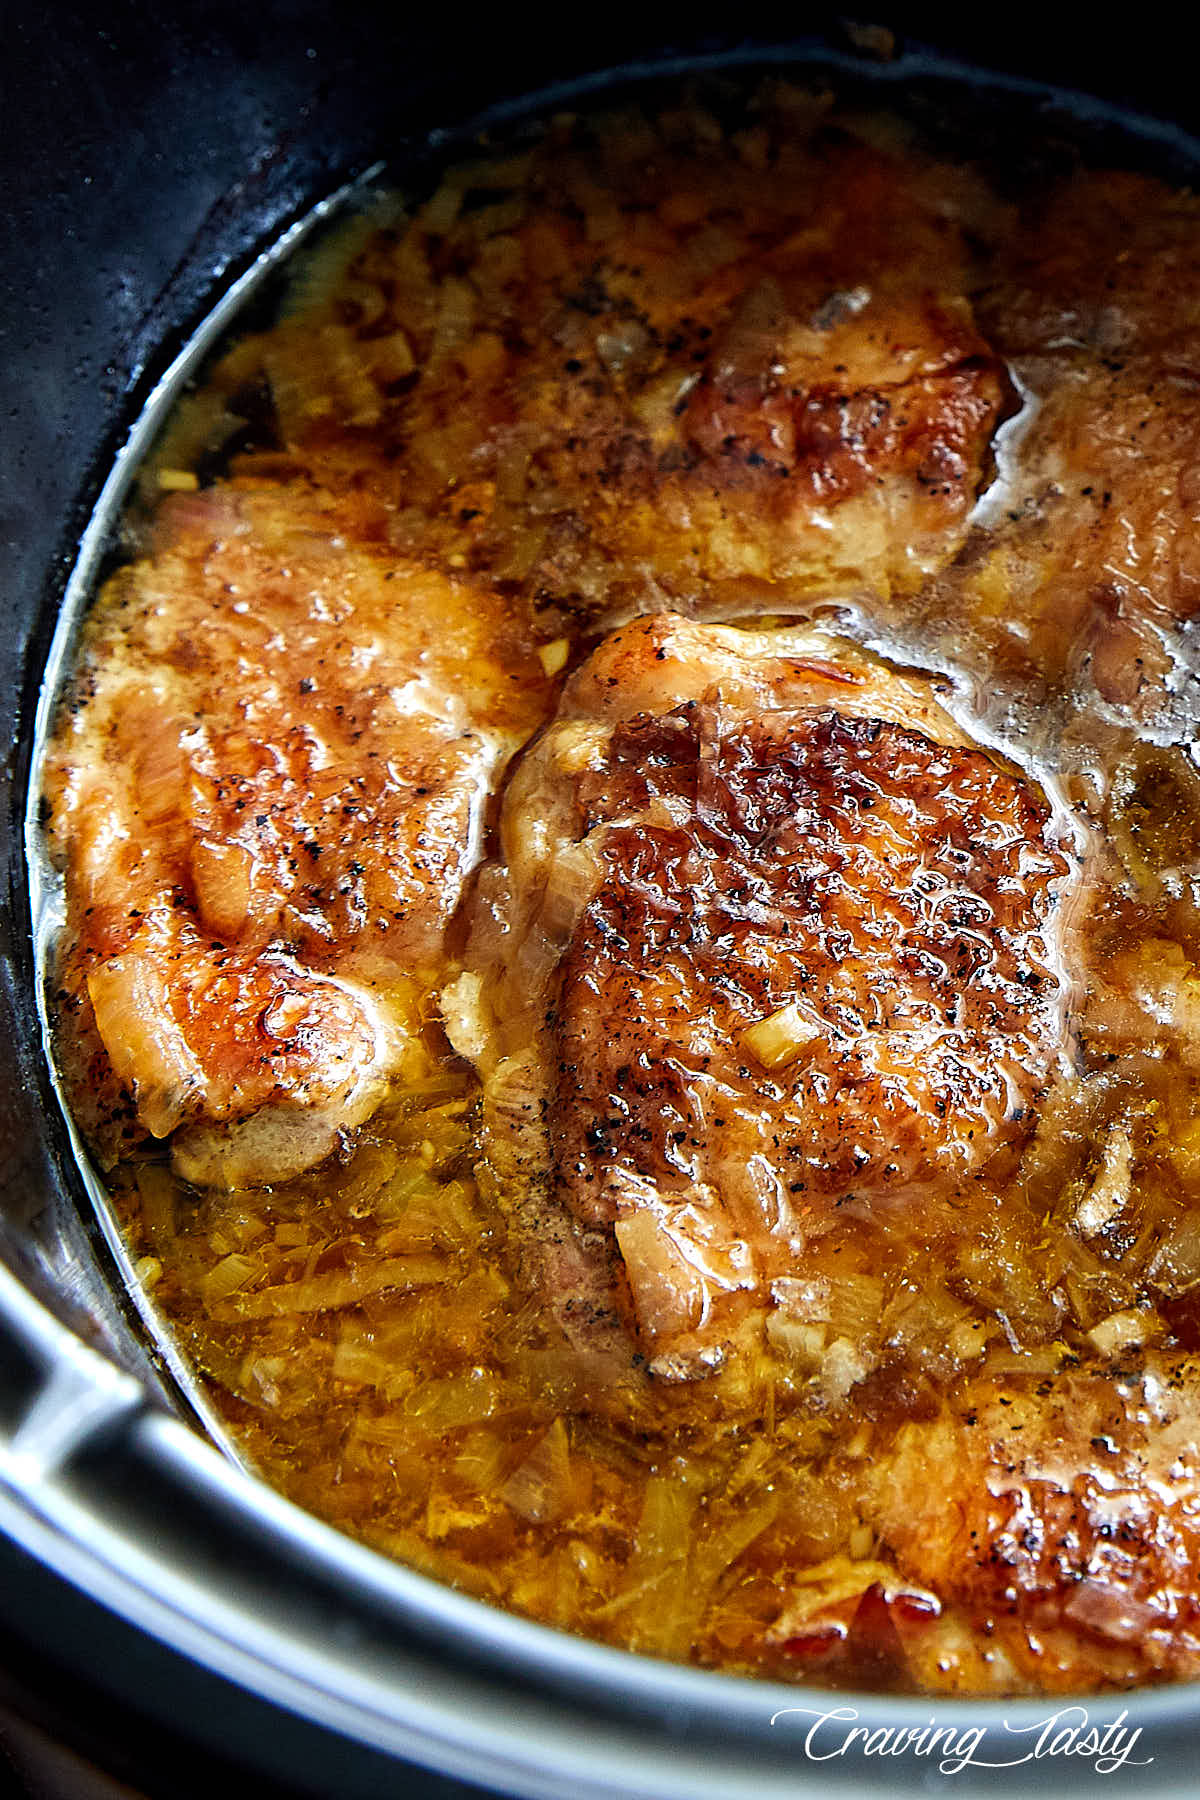 Close up of golden brown chicken in a slow cooker in juices.